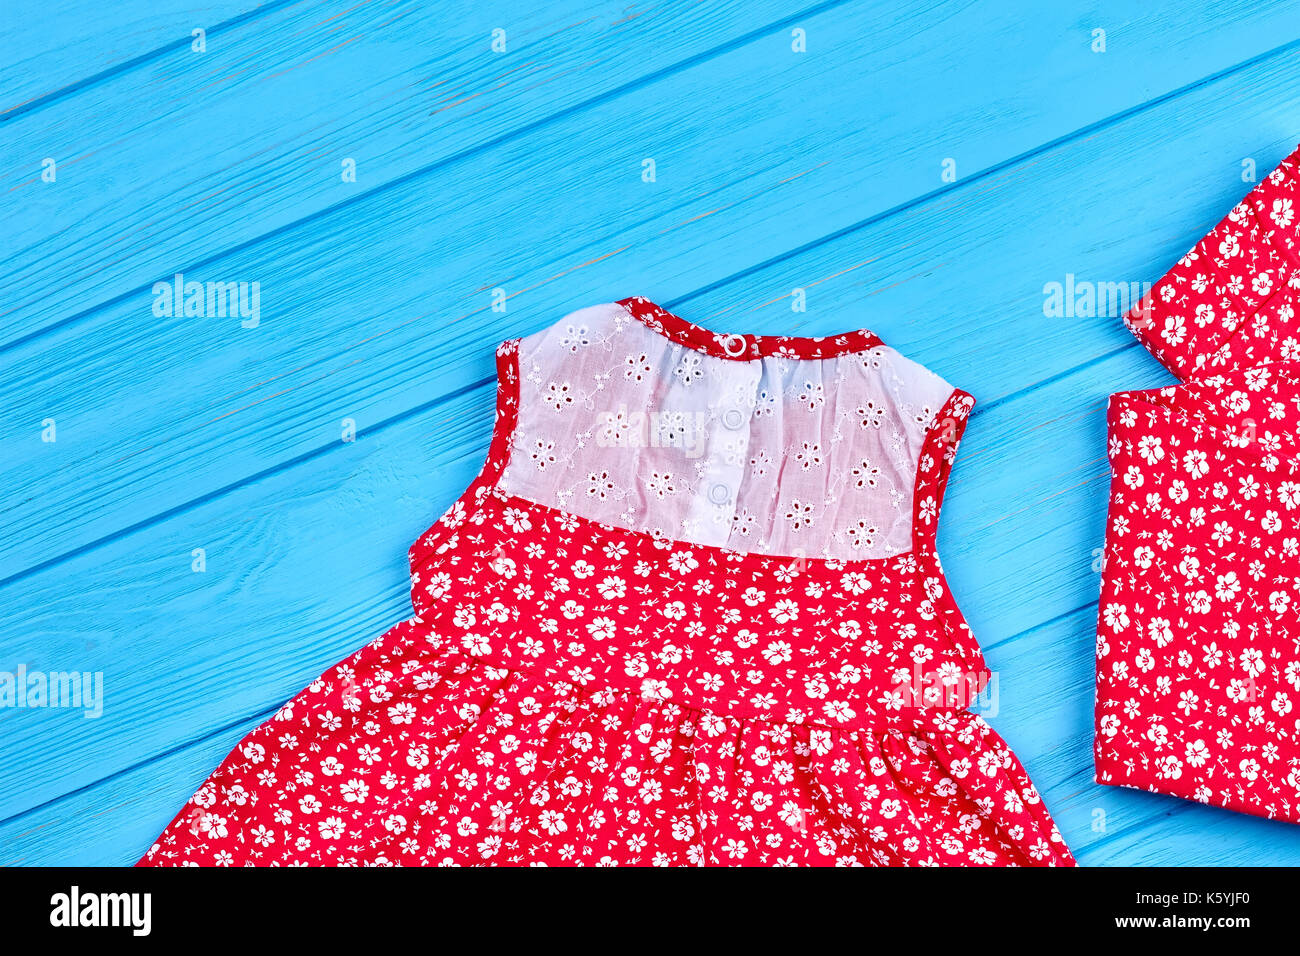 ef3096a76719 Set of baby-girl summer apparel. Beautiful red blouse and pants in small  floral print for little girls, blue wooden background.